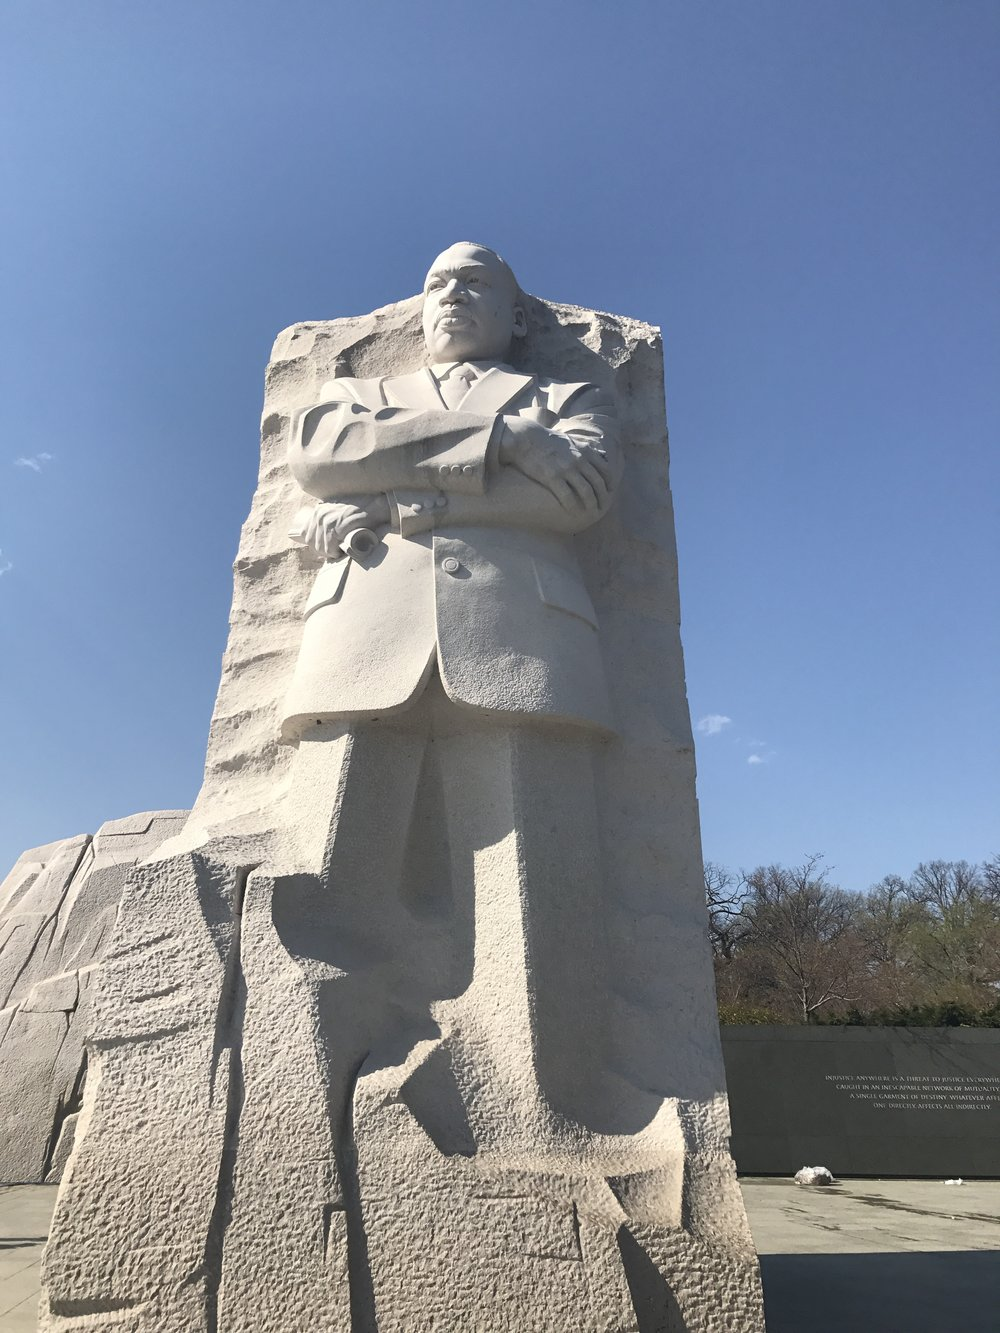 Martin Luther King Jr.'s sculpture at the Martin Luther King Jr. Memorial.